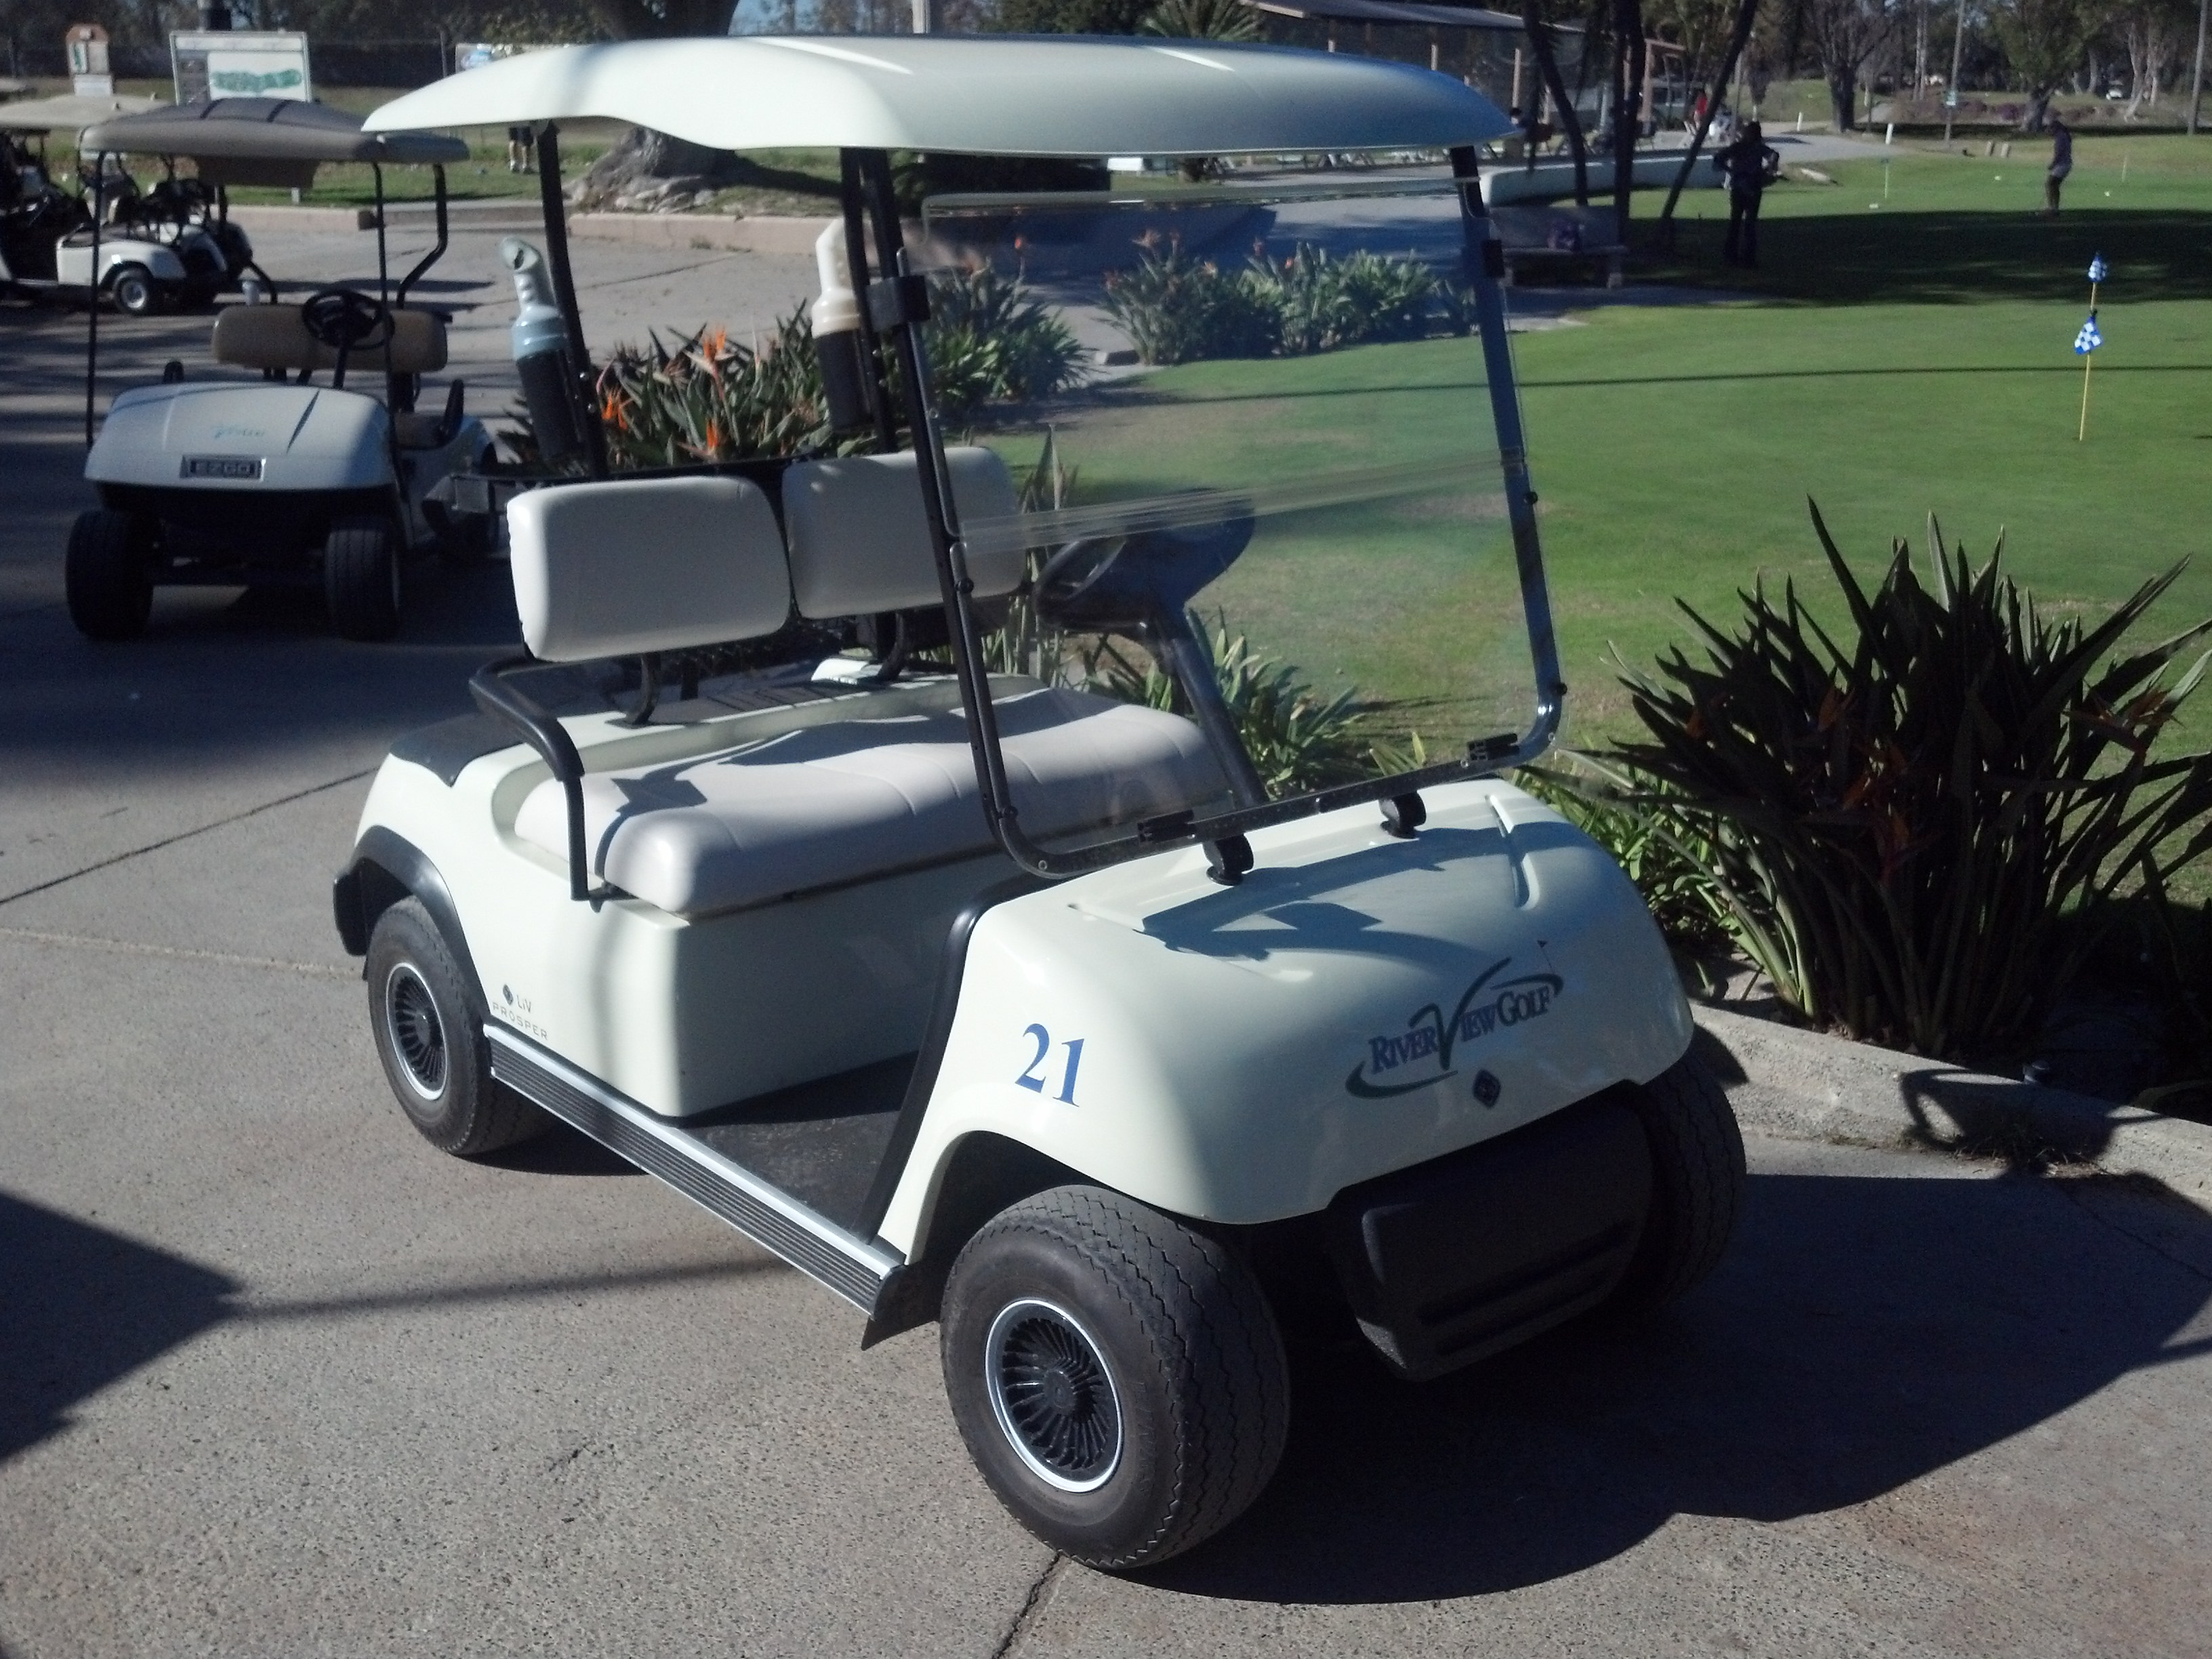 LIV Golf Cars